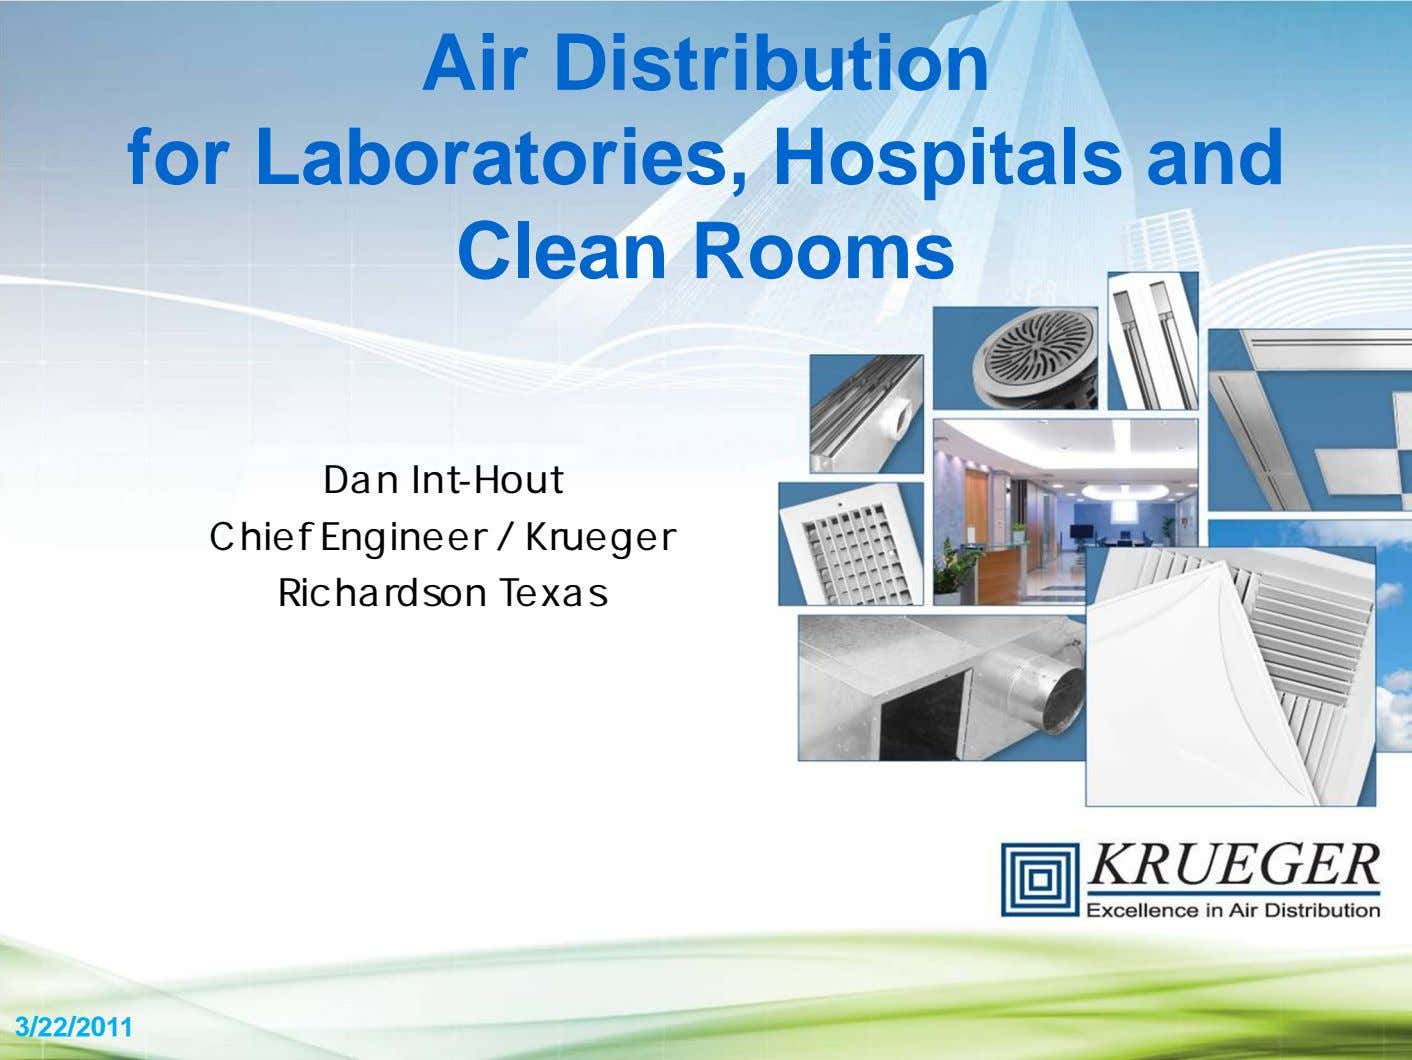 Air Distribution for Laboratories, Hospitals and Clean Rooms Dan Int-Hout Chief Engineer / Krueger Richardson